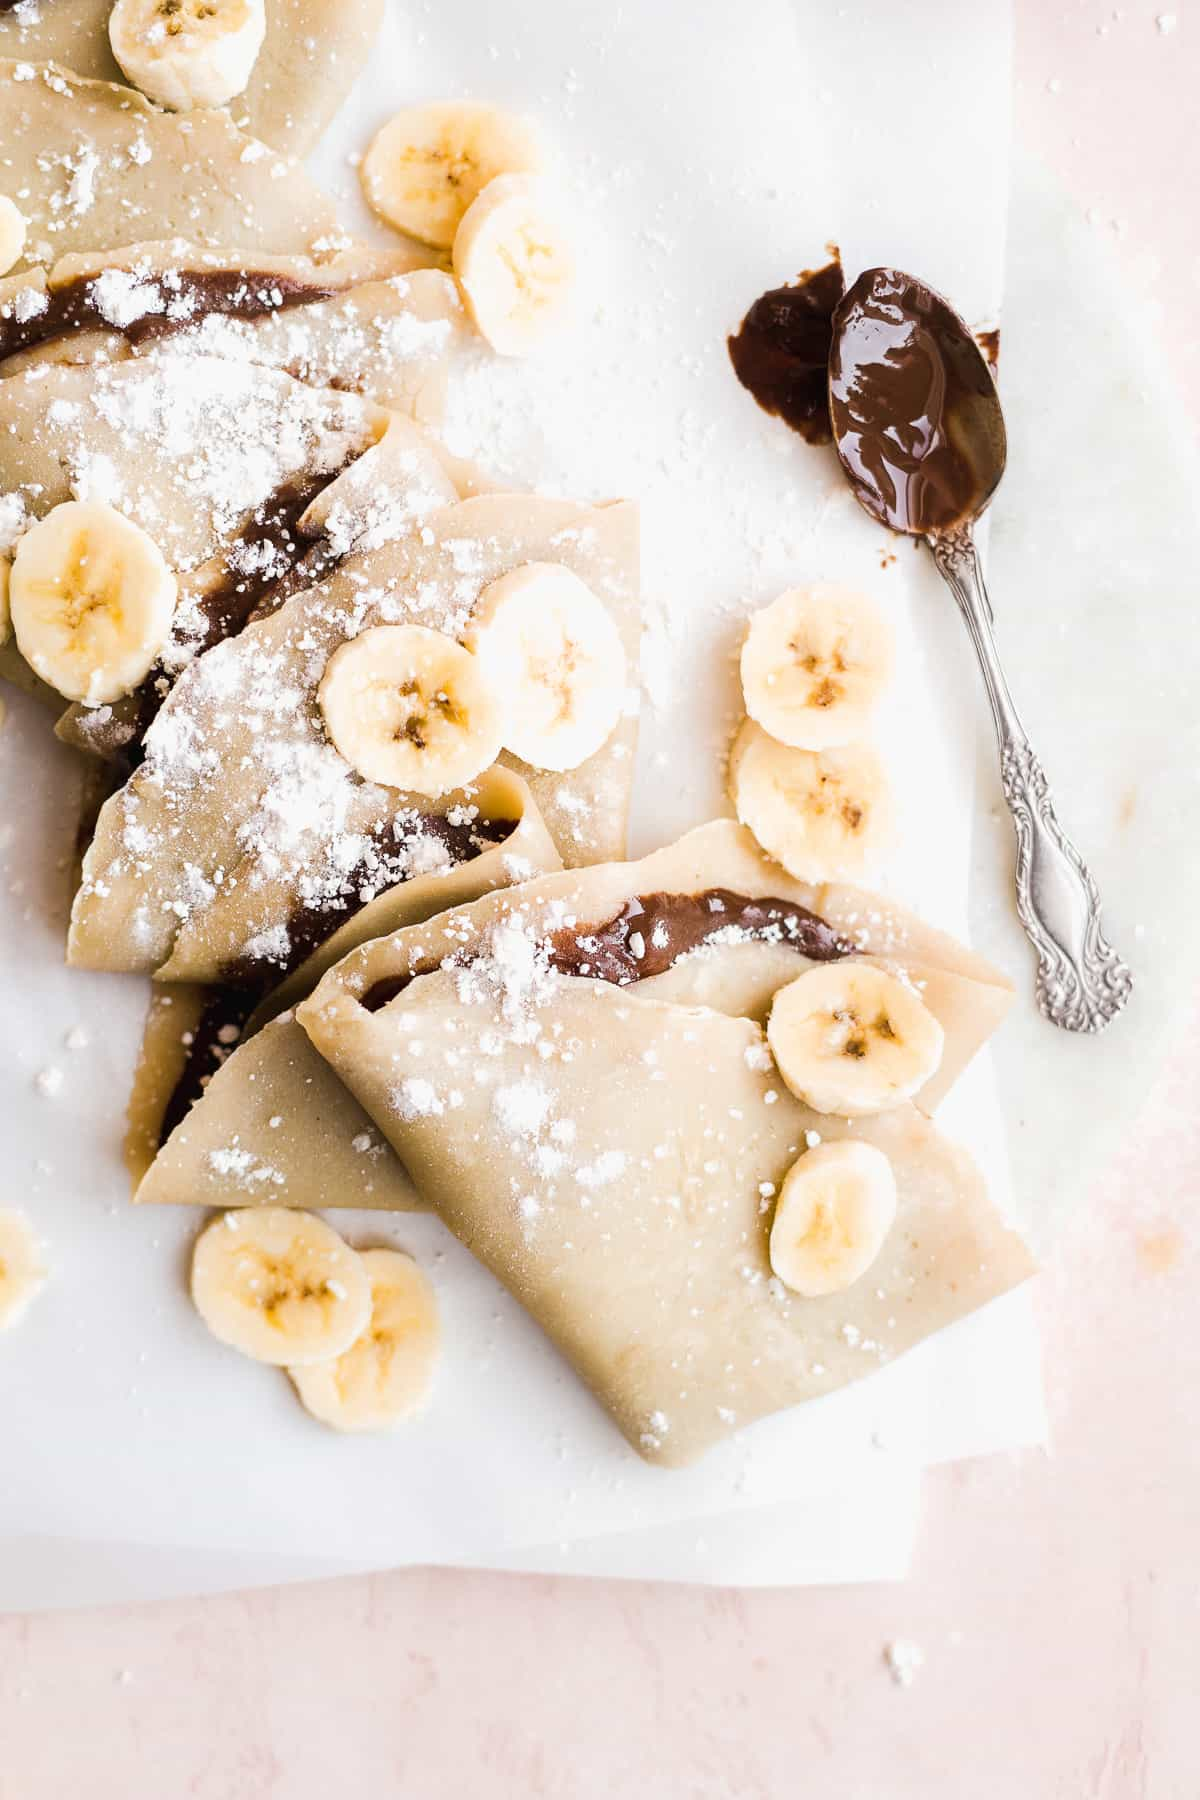 Chocolate crepes in a line on parchment paper.